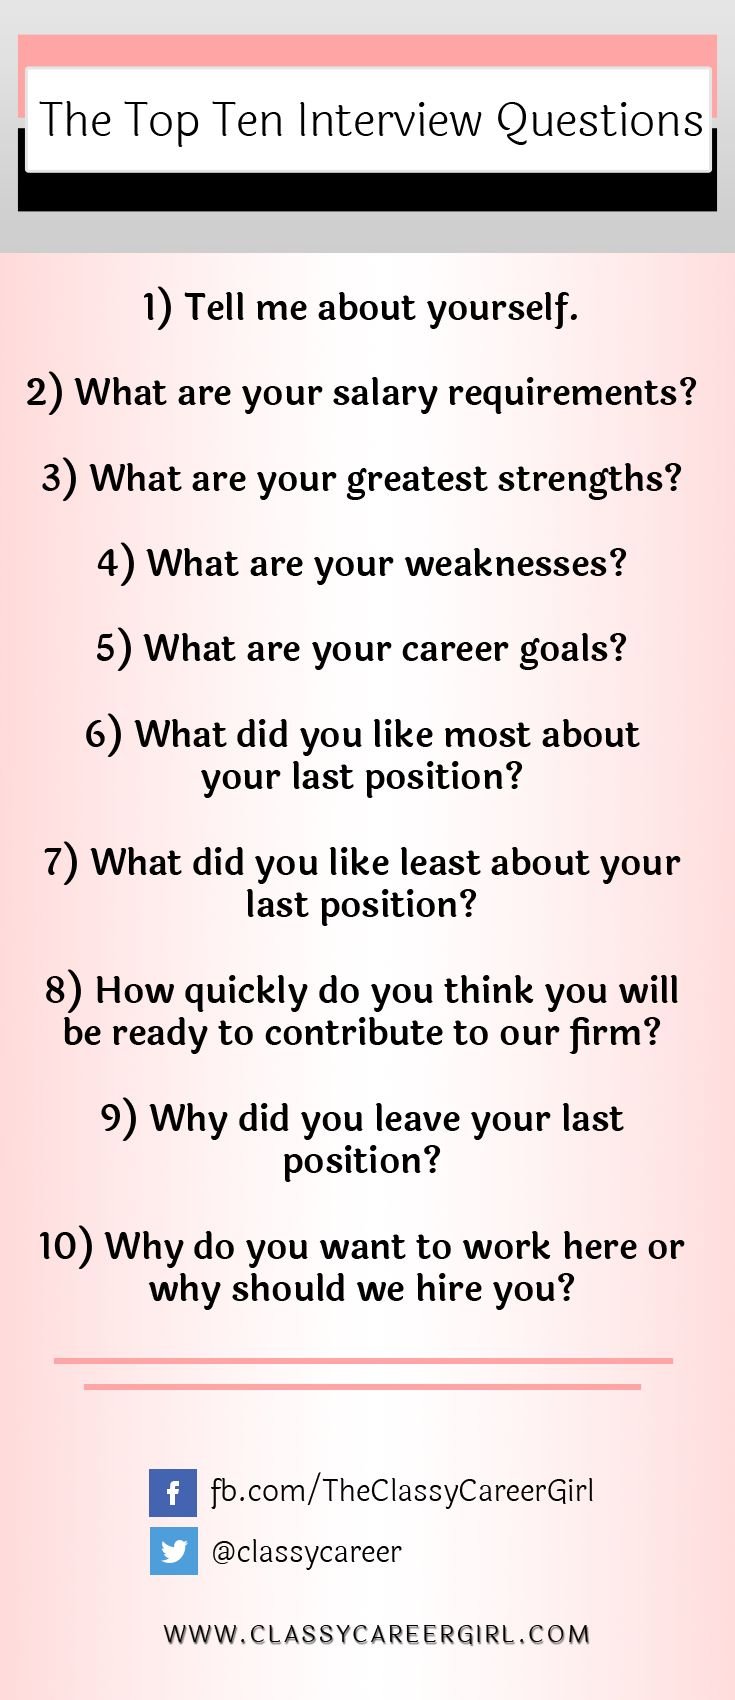 resume Resume Questions best 25 interview questions ideas on pinterest for how to answer the top ten most asked video